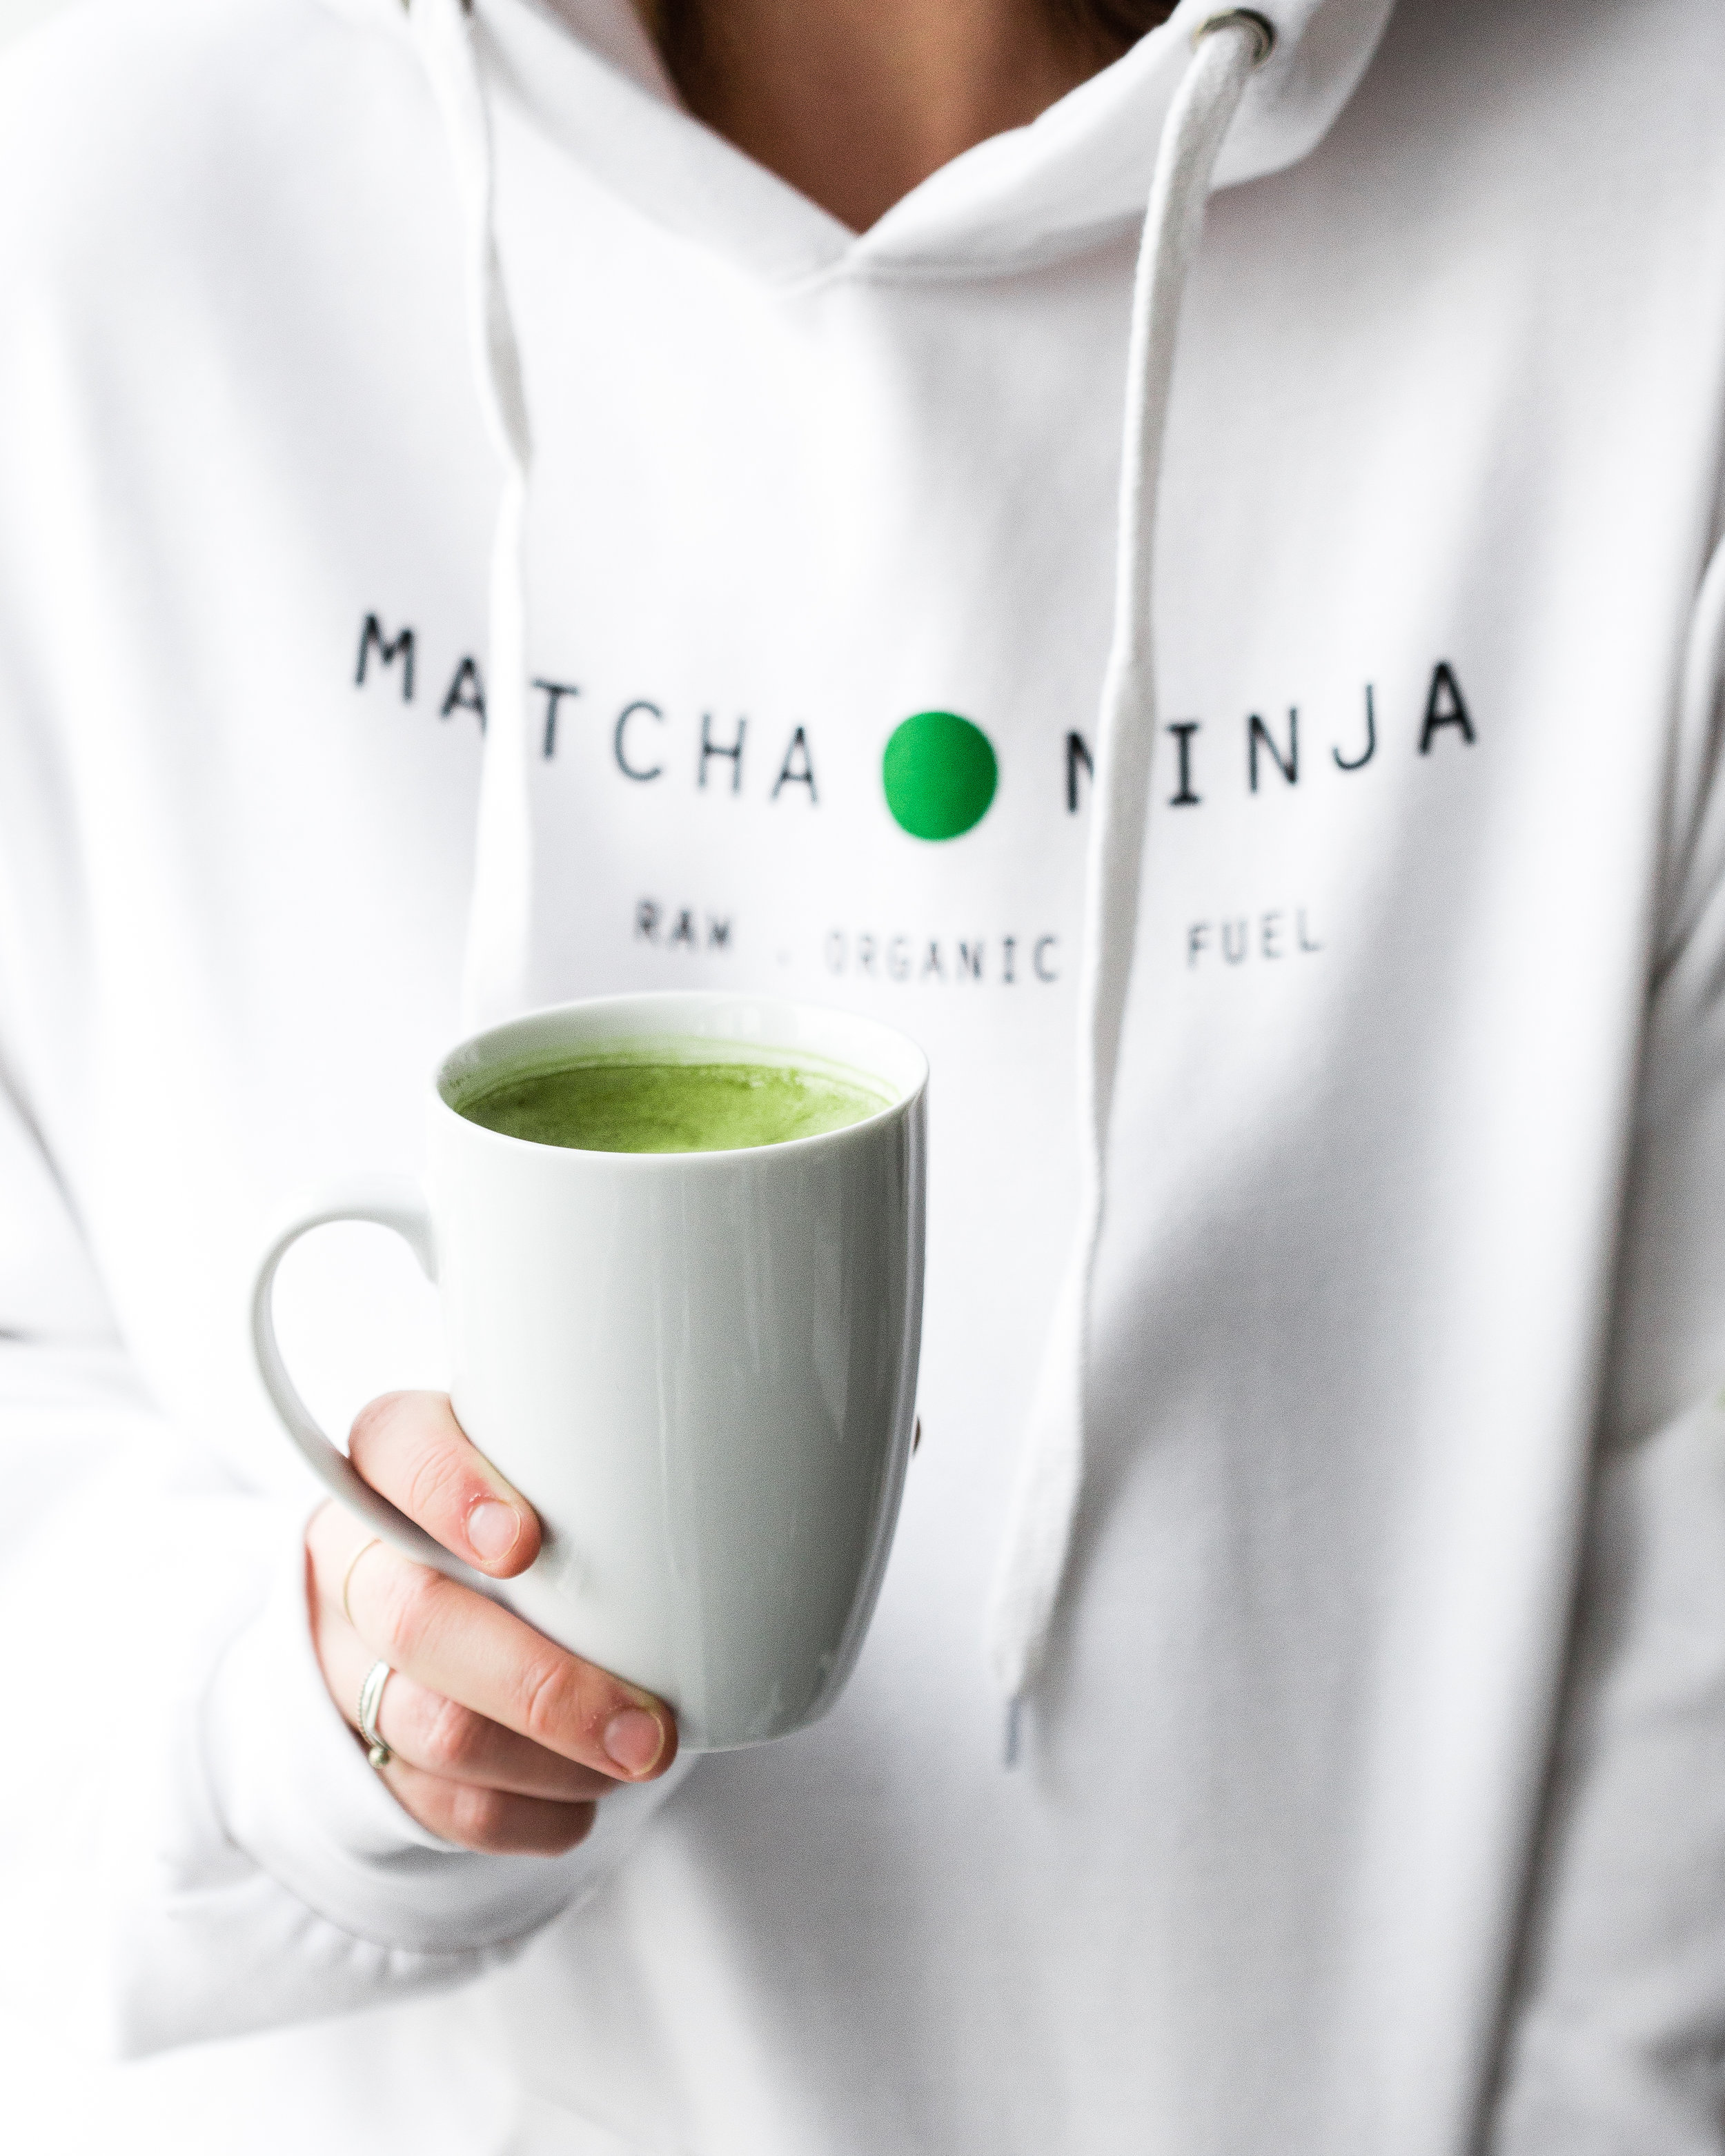 sleep better with matcha